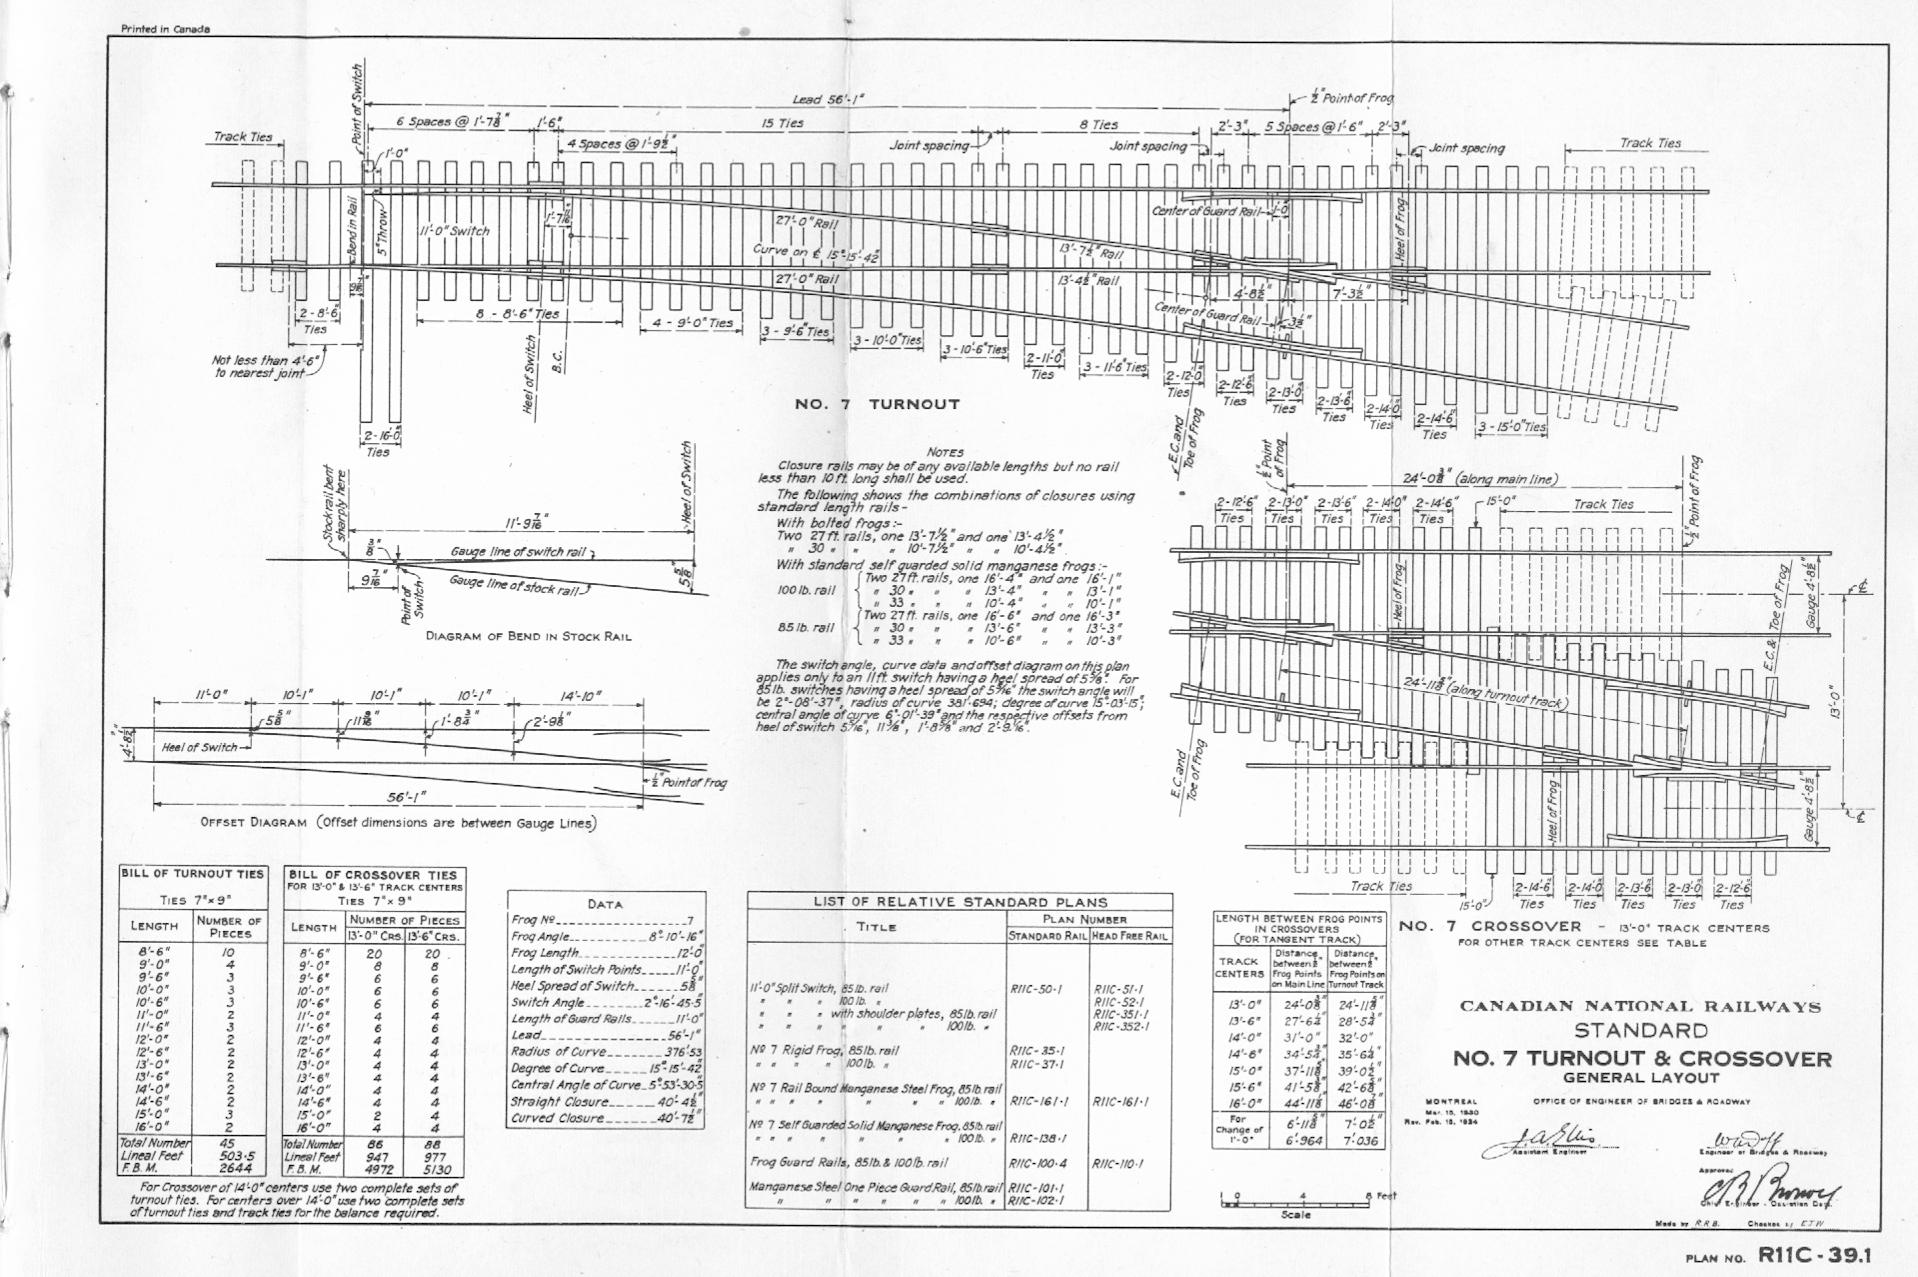 Model Railroad Shelf Layout Diagram